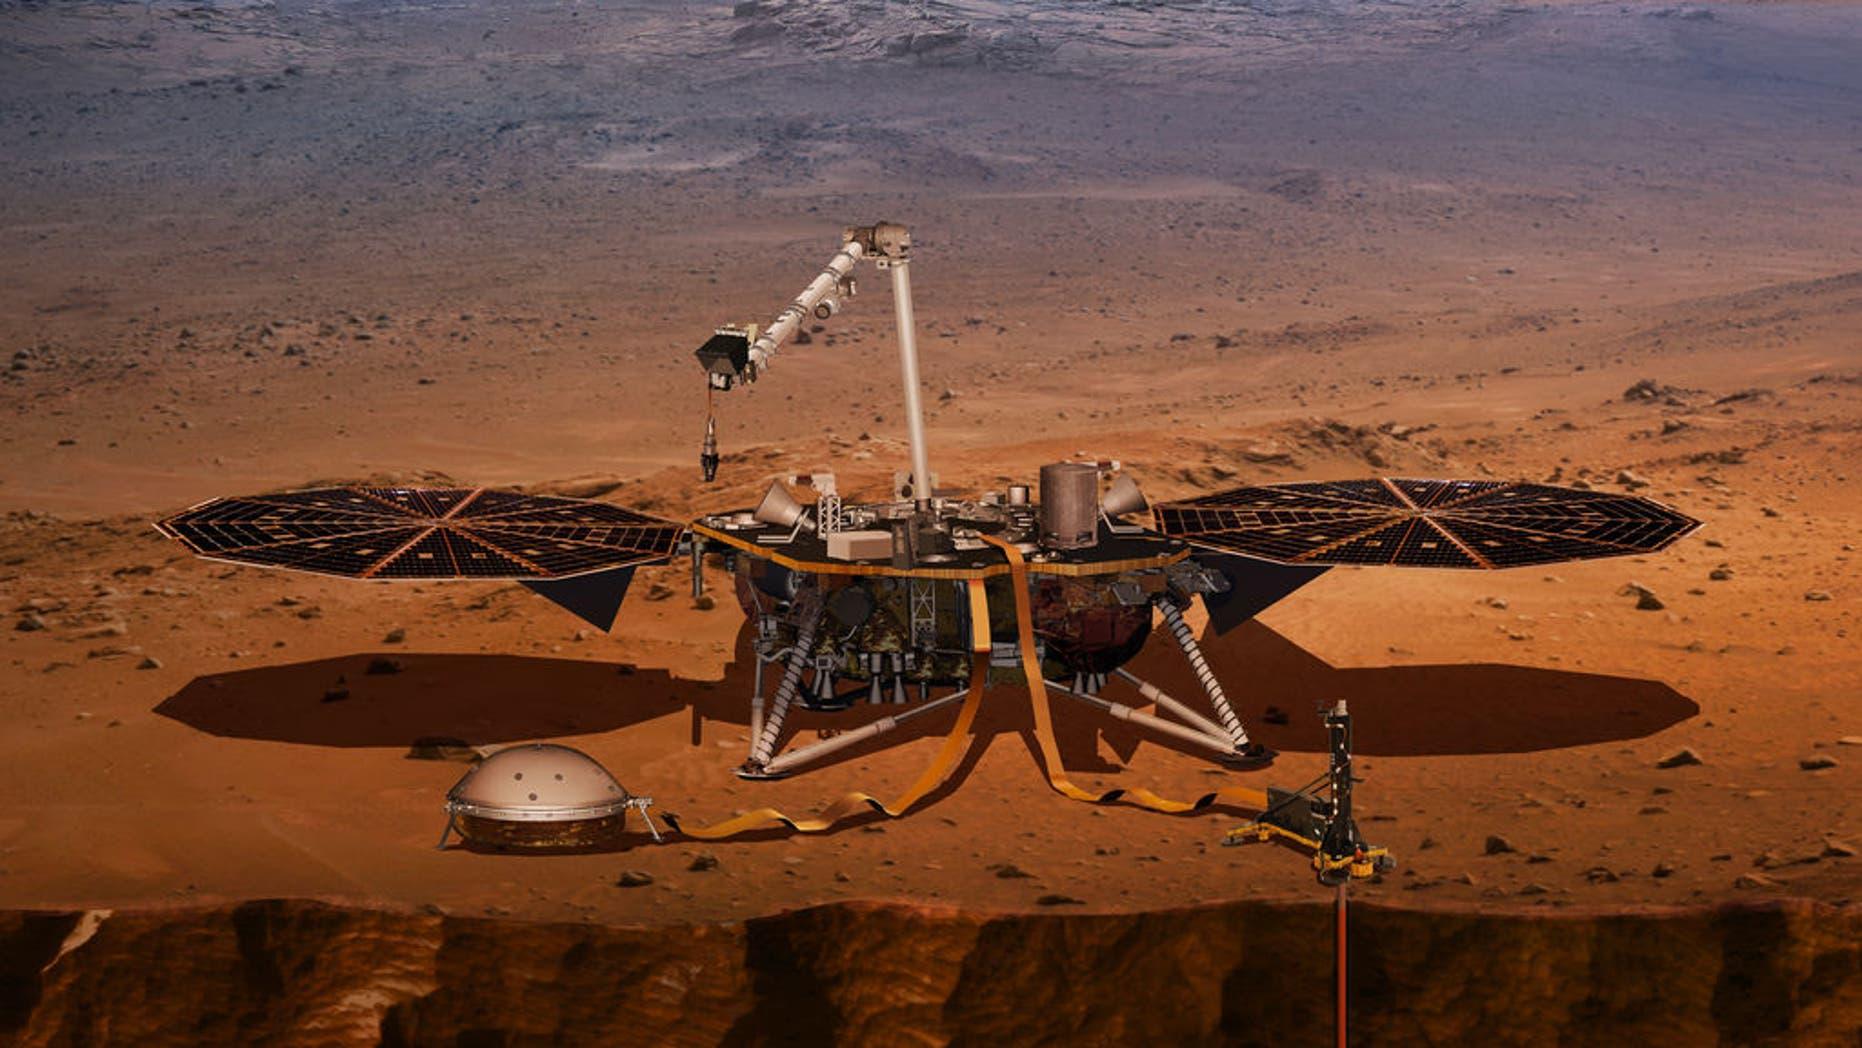 Artist's illustration of NASA's Mars InSight lander, which is scheduled to launch on May 5, 2018, to probe the Red Planet's interior structure.